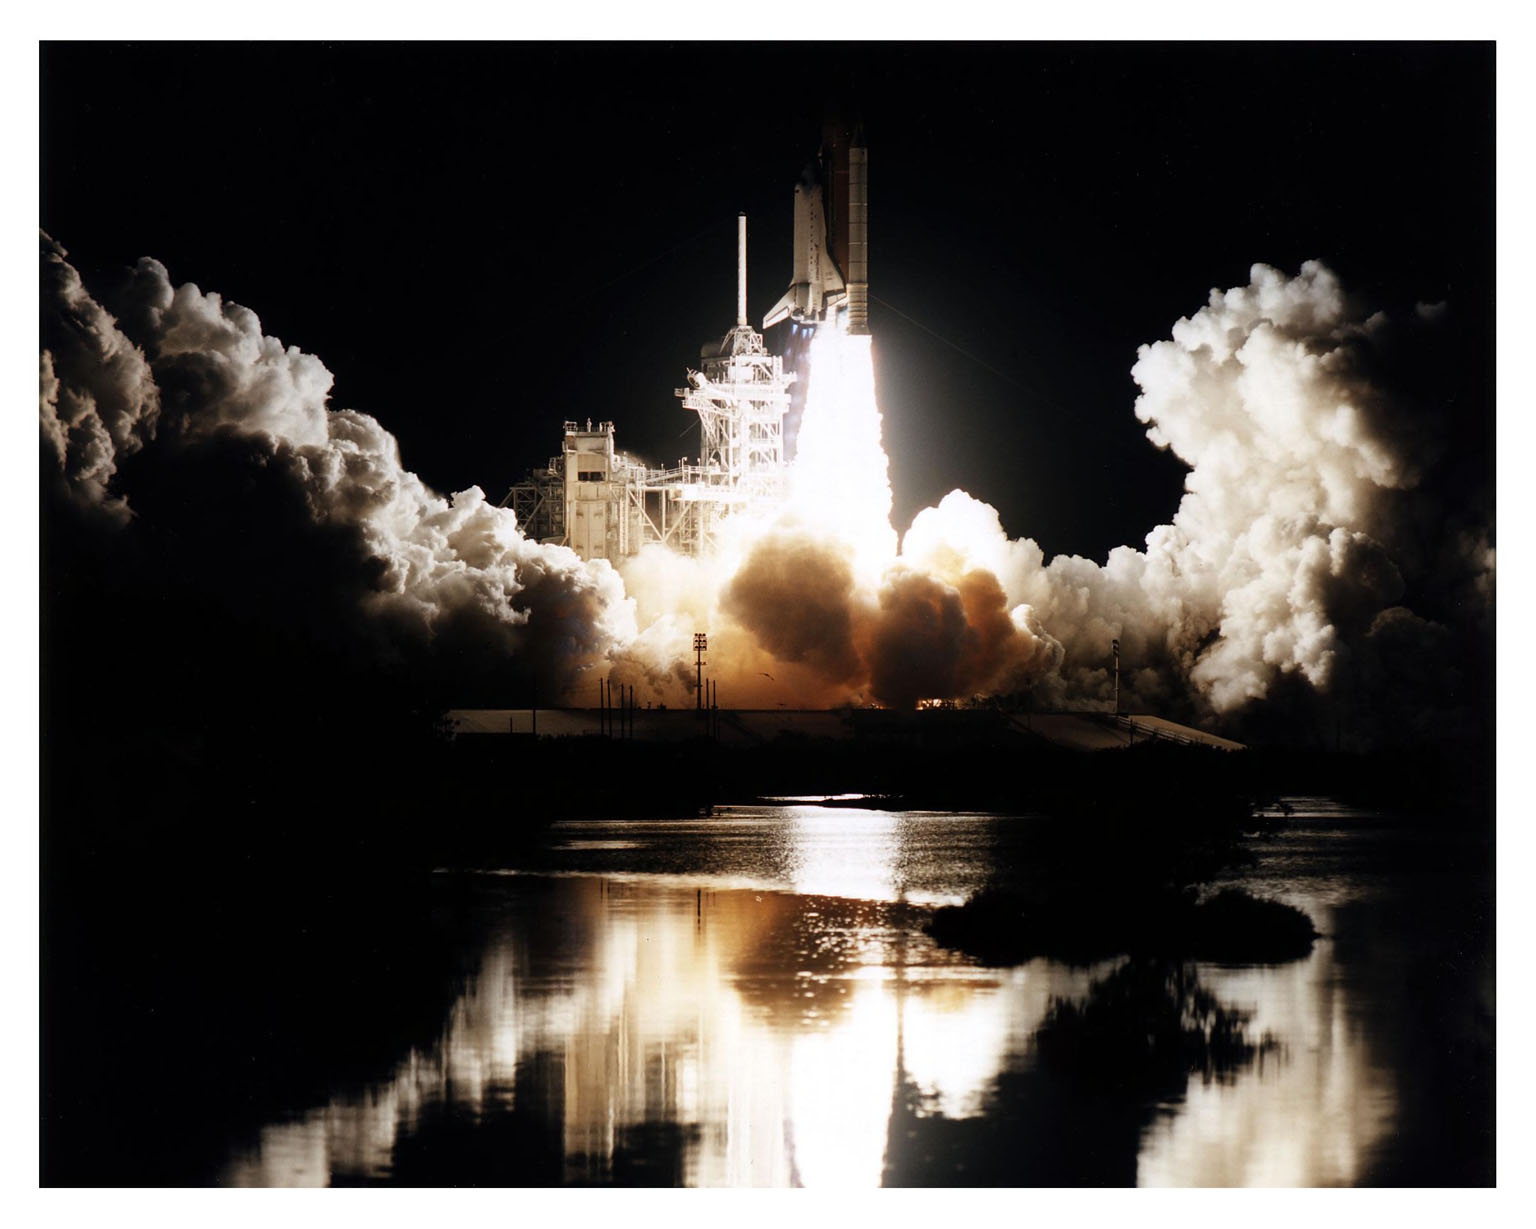 """Like a rising sun lighting up the night, the Space Shuttle Atlantis soars from Launch Pad 39B at 4:27:23 a.m. EST Jan. 12 on its way to dock with the Mir space station for the fifth time. The 10-day mission will feature the transfer of Mission Specialist Jerry Linenger to Mir to replace astronaut John Blaha, who has been on the orbital laboratory since Sept. 19, 1996. The other STS-81 crew members include Mission Commander Michael A. Baker; Pilot Brent W. Jett, Jr.; and Mission Specialists John M. Grunsfeld, Peter J. K. """"Jeff"""" Wisoff and Marsha S. Ivins. During the five-day docking operations, the Shuttle and Mir crews will conduct risk mitigation, human life science, microgravity and materials processing experiments that will provide data for the design, development and operation of the International Space Station. The primary payload is the SPACEHAB-DM double module that will provide space for more than 2,000 pounds of hardware, food and water that will be transferred into the Russian space station.The SPACEHAB will also be used to return experiment samples from the Mir to Earth for analysis and for microgravity experiments during the mission"""